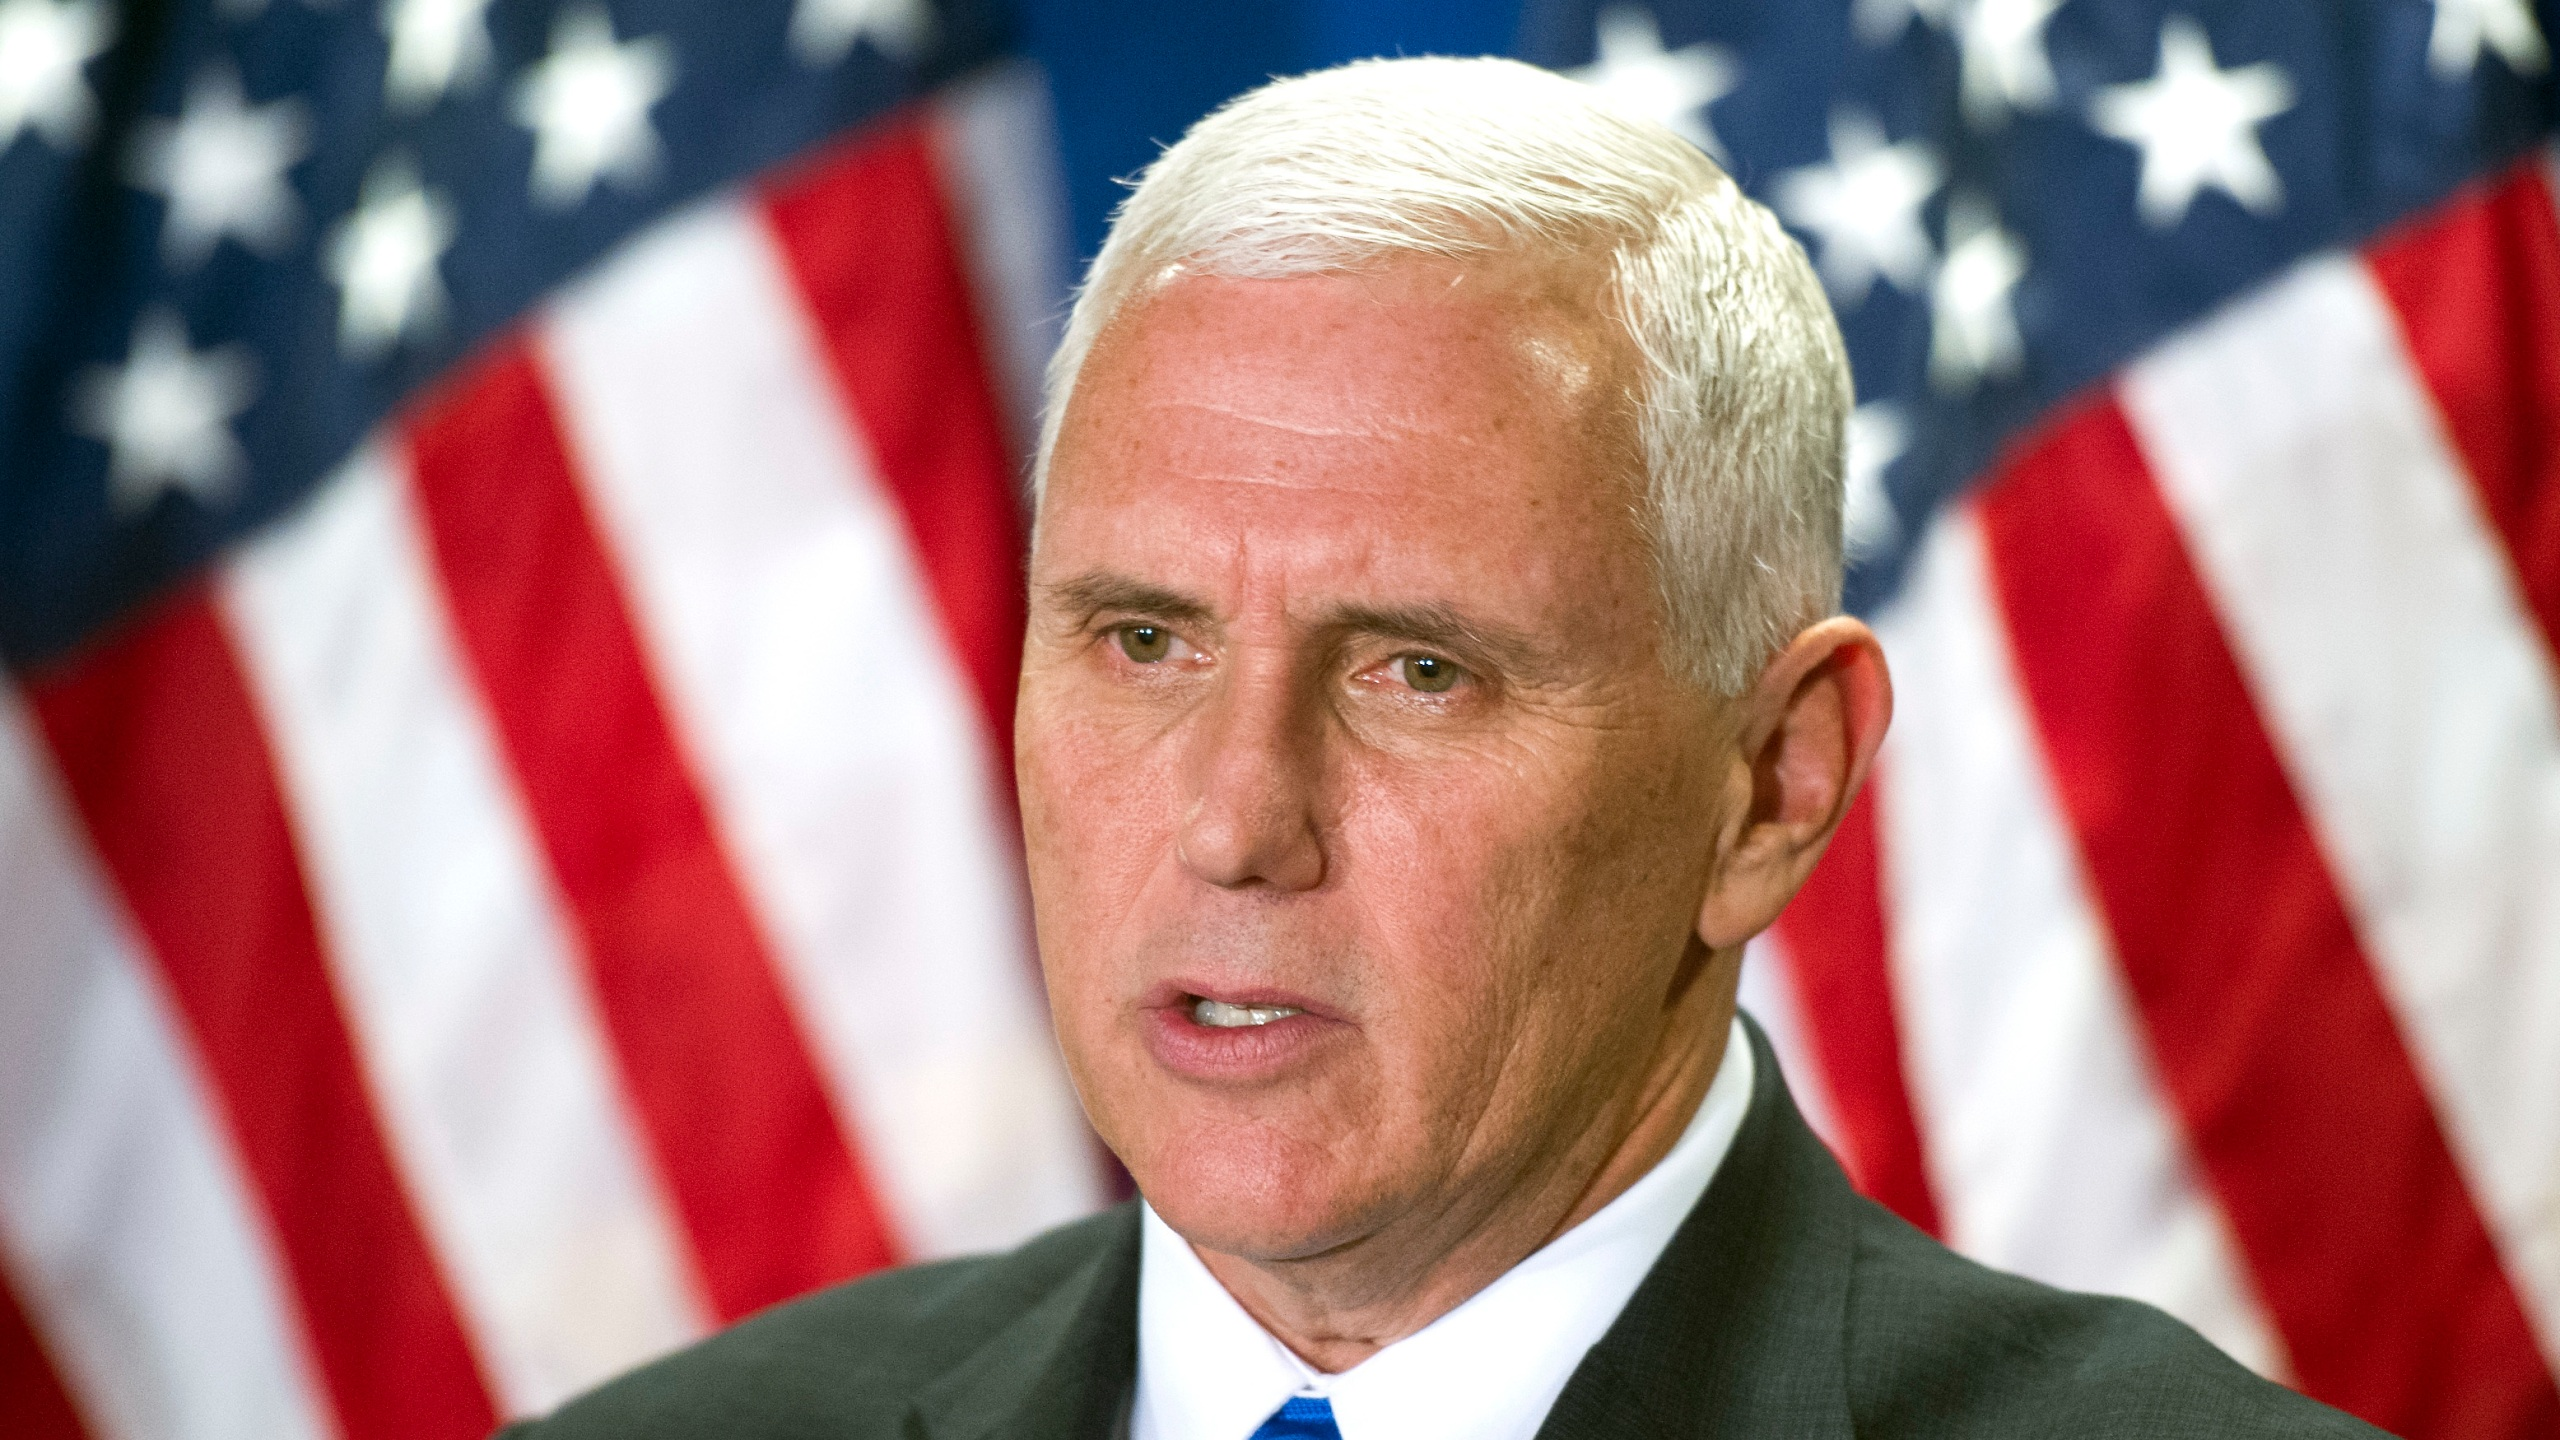 Campaign 2016 Pence_207750